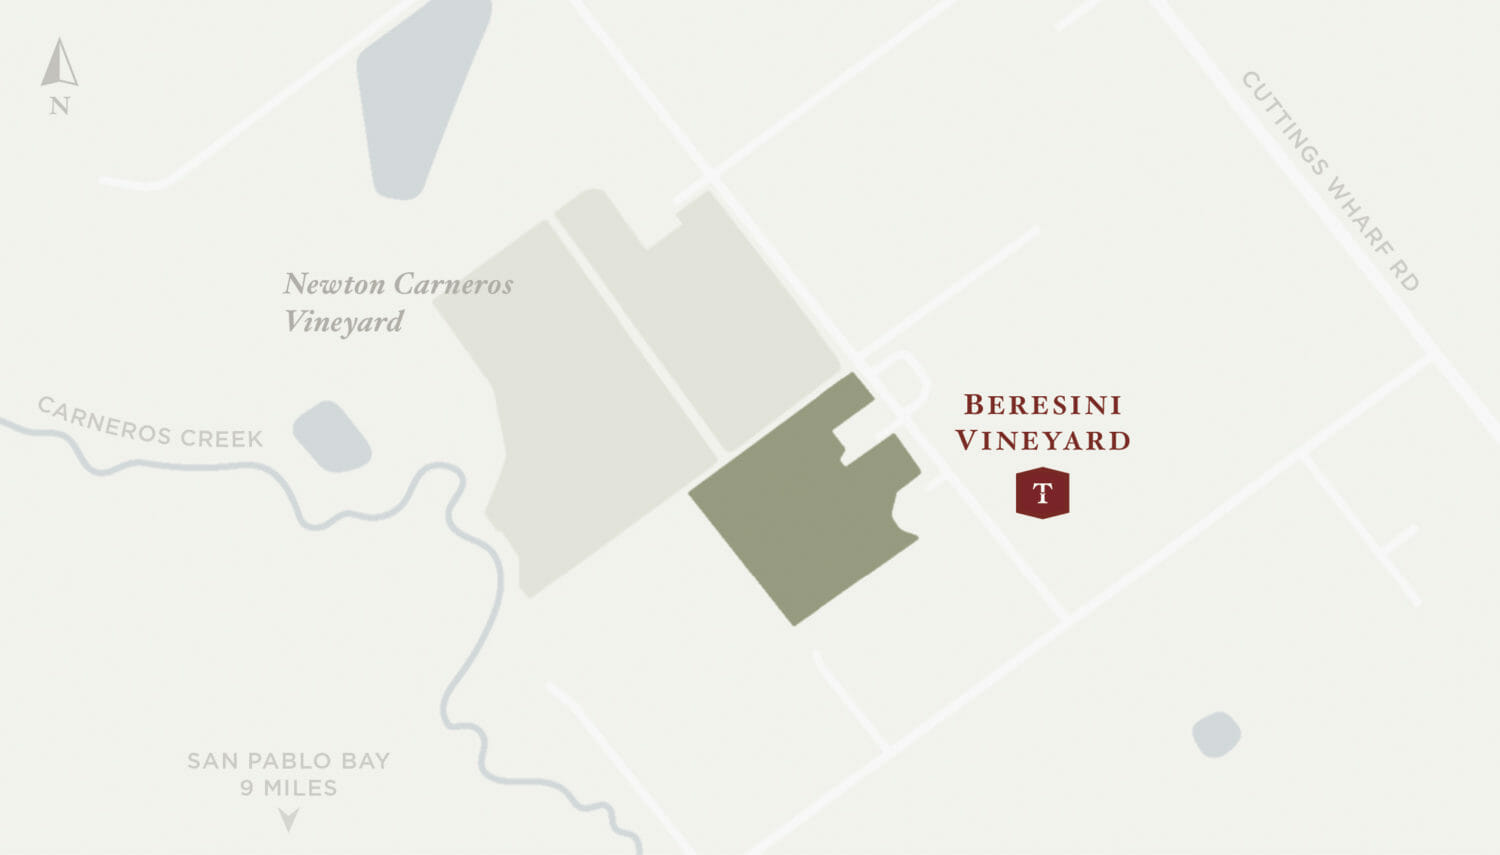 Beresini Vineyard Map